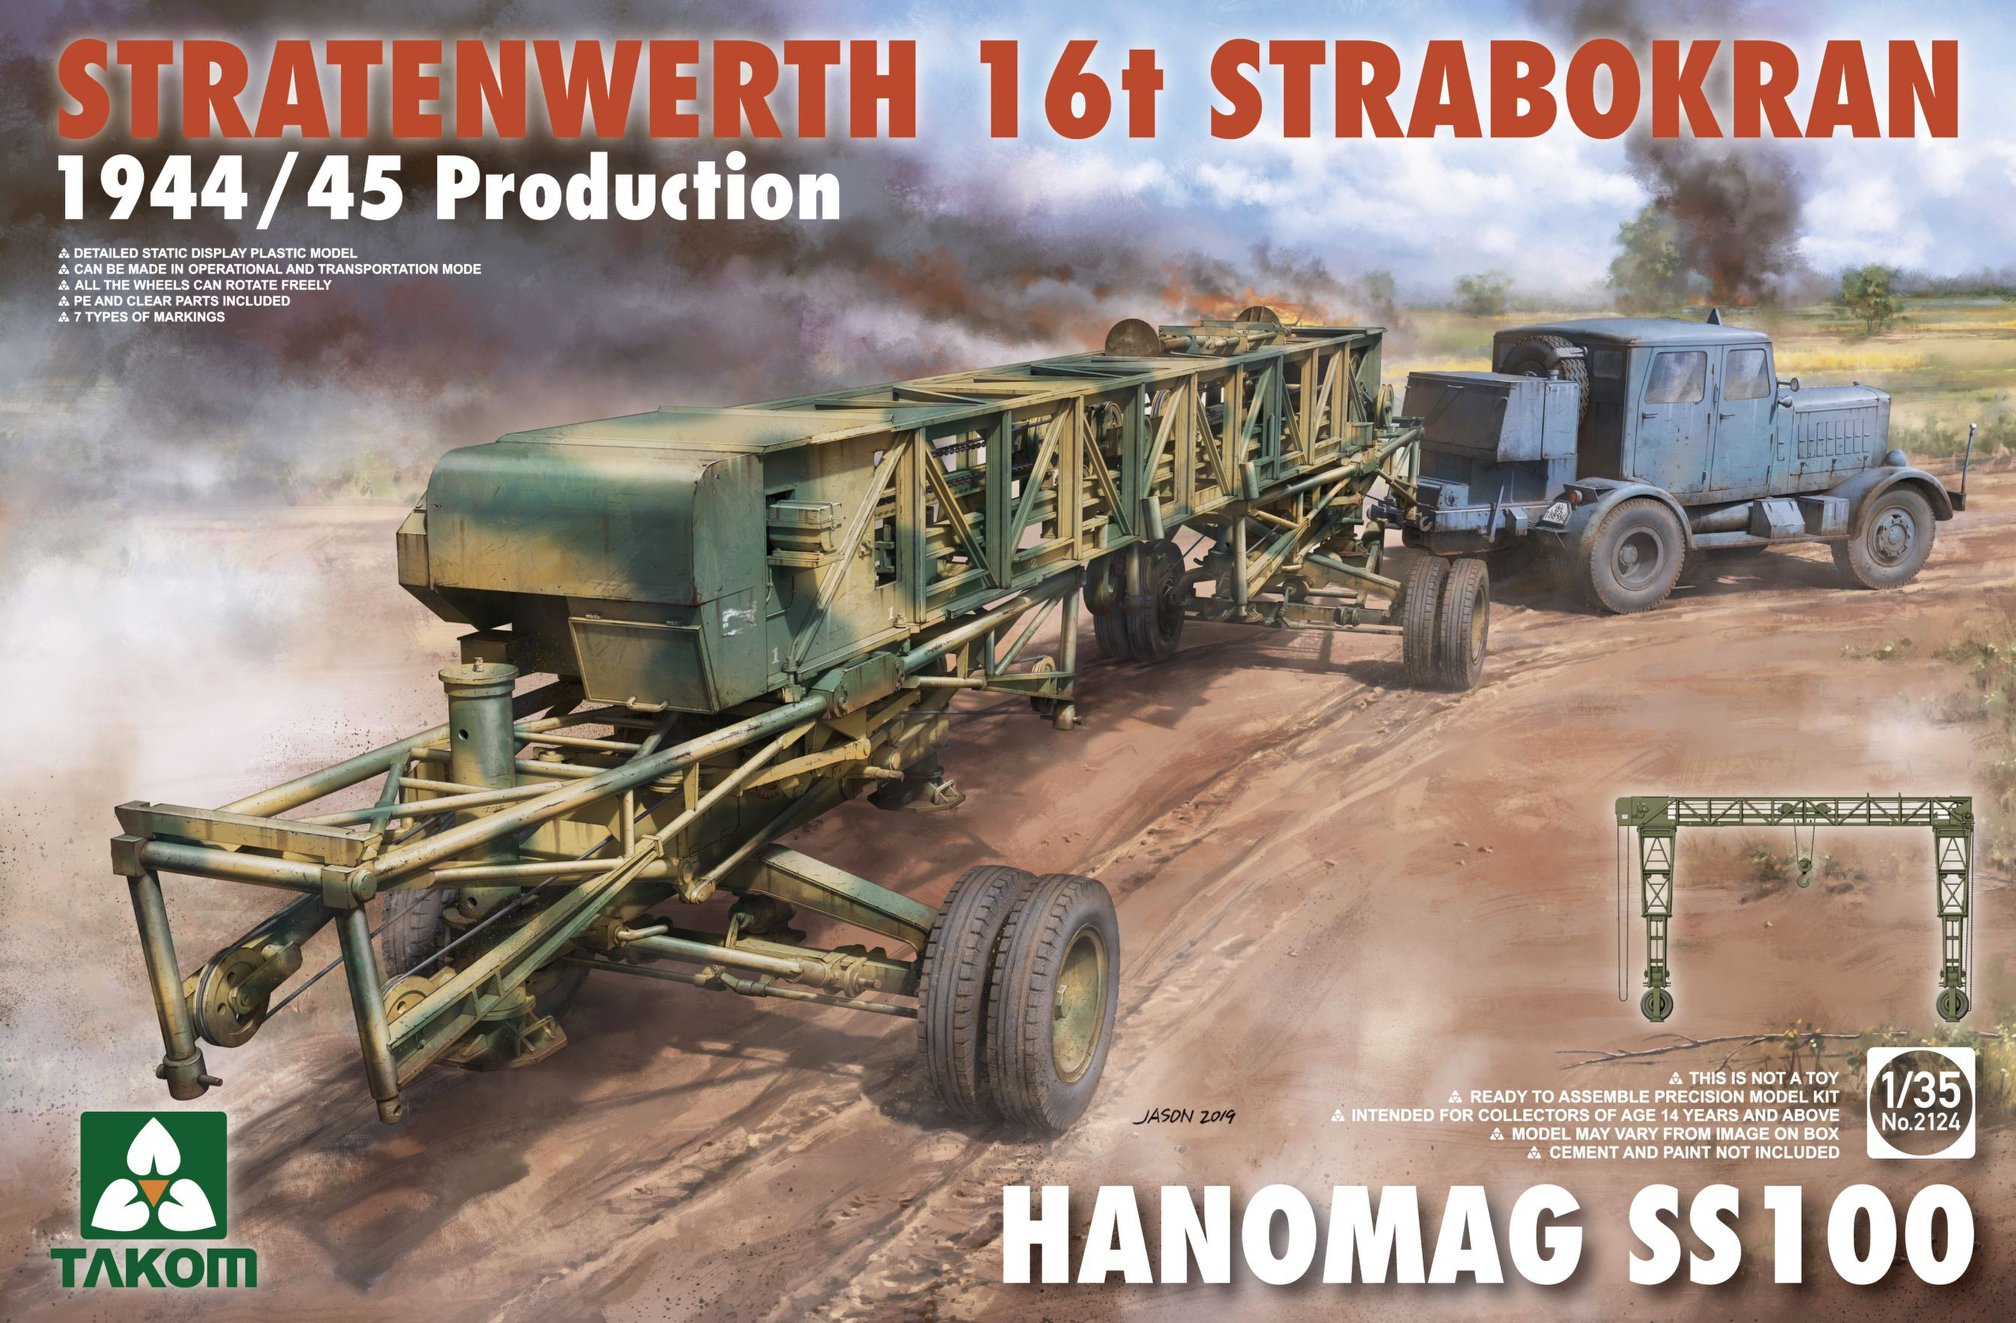 TAKOM #  2124 Stratenwerth 16T Strabokran 1944_45 Production.jpg